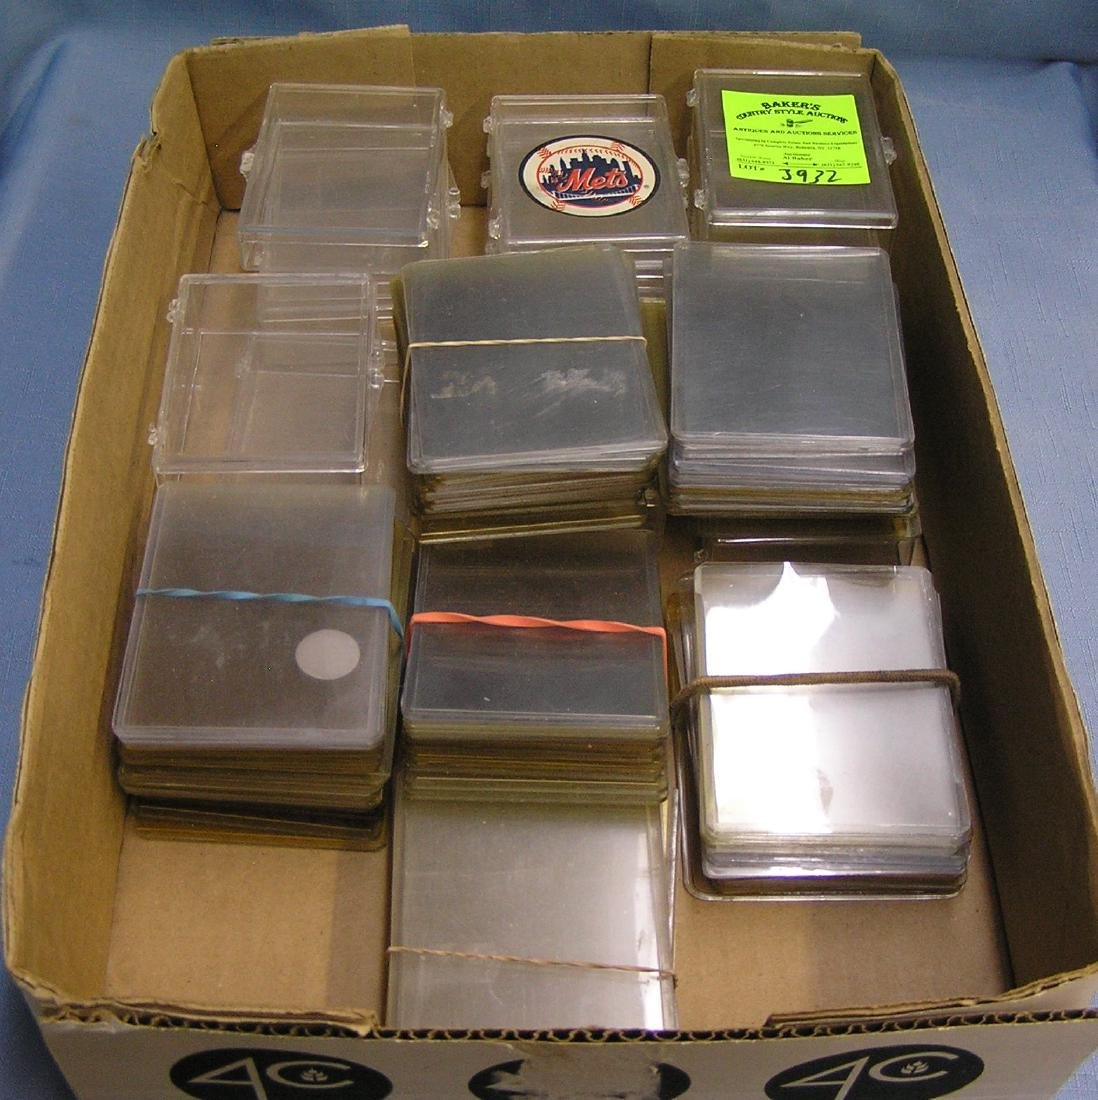 Box full of trading card protective cases and sleeves